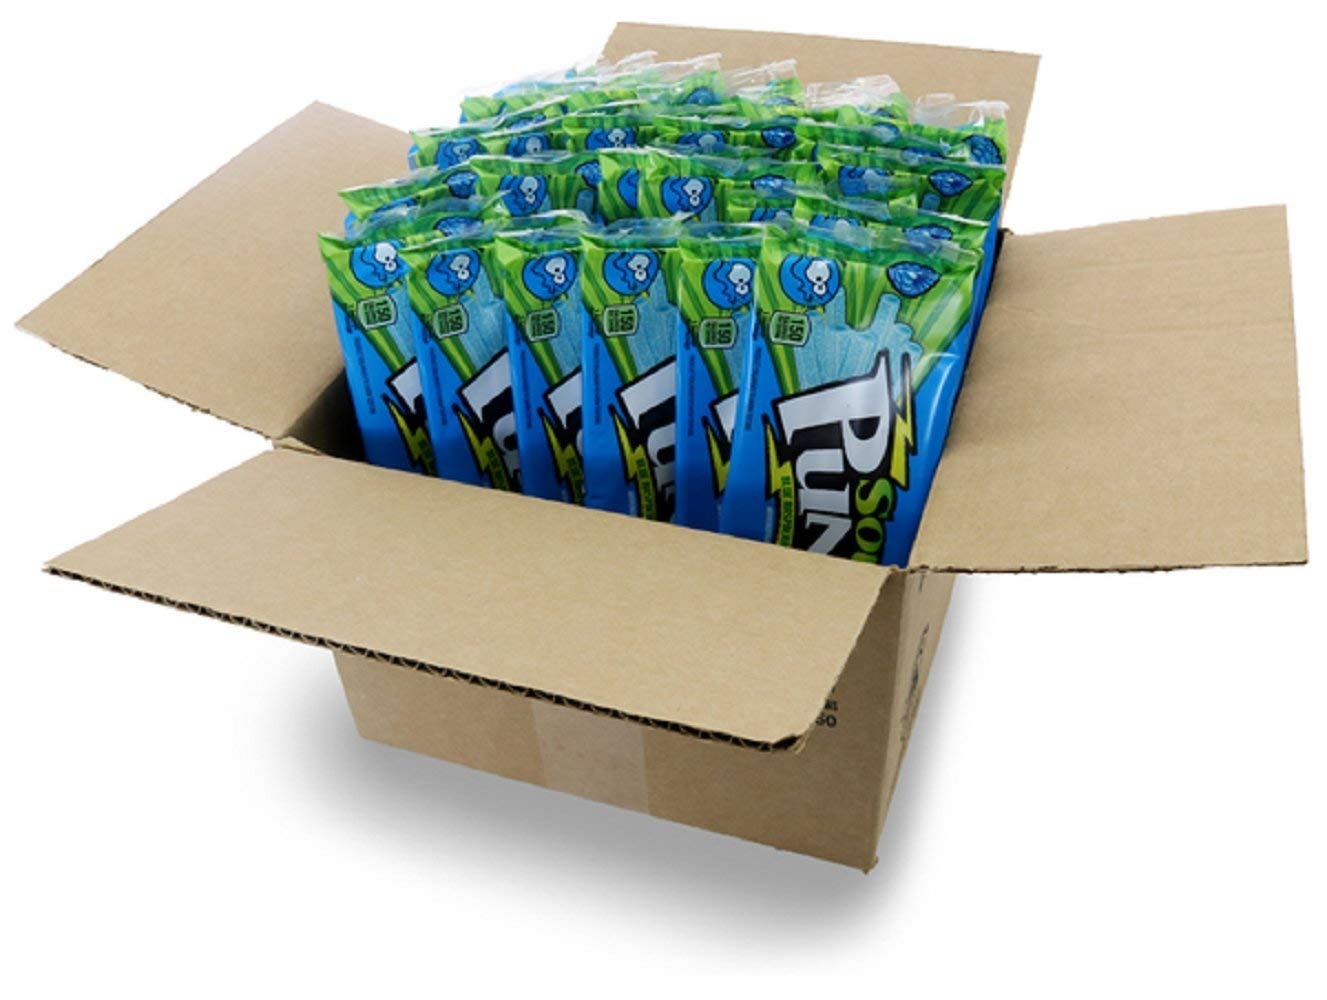 Sour Punch Straws, Blue Raspberry Fruity Flavor, Soft & Chewy Candy, 4.5oz Tray (24 Pack) by Sour Punch (Image #3)